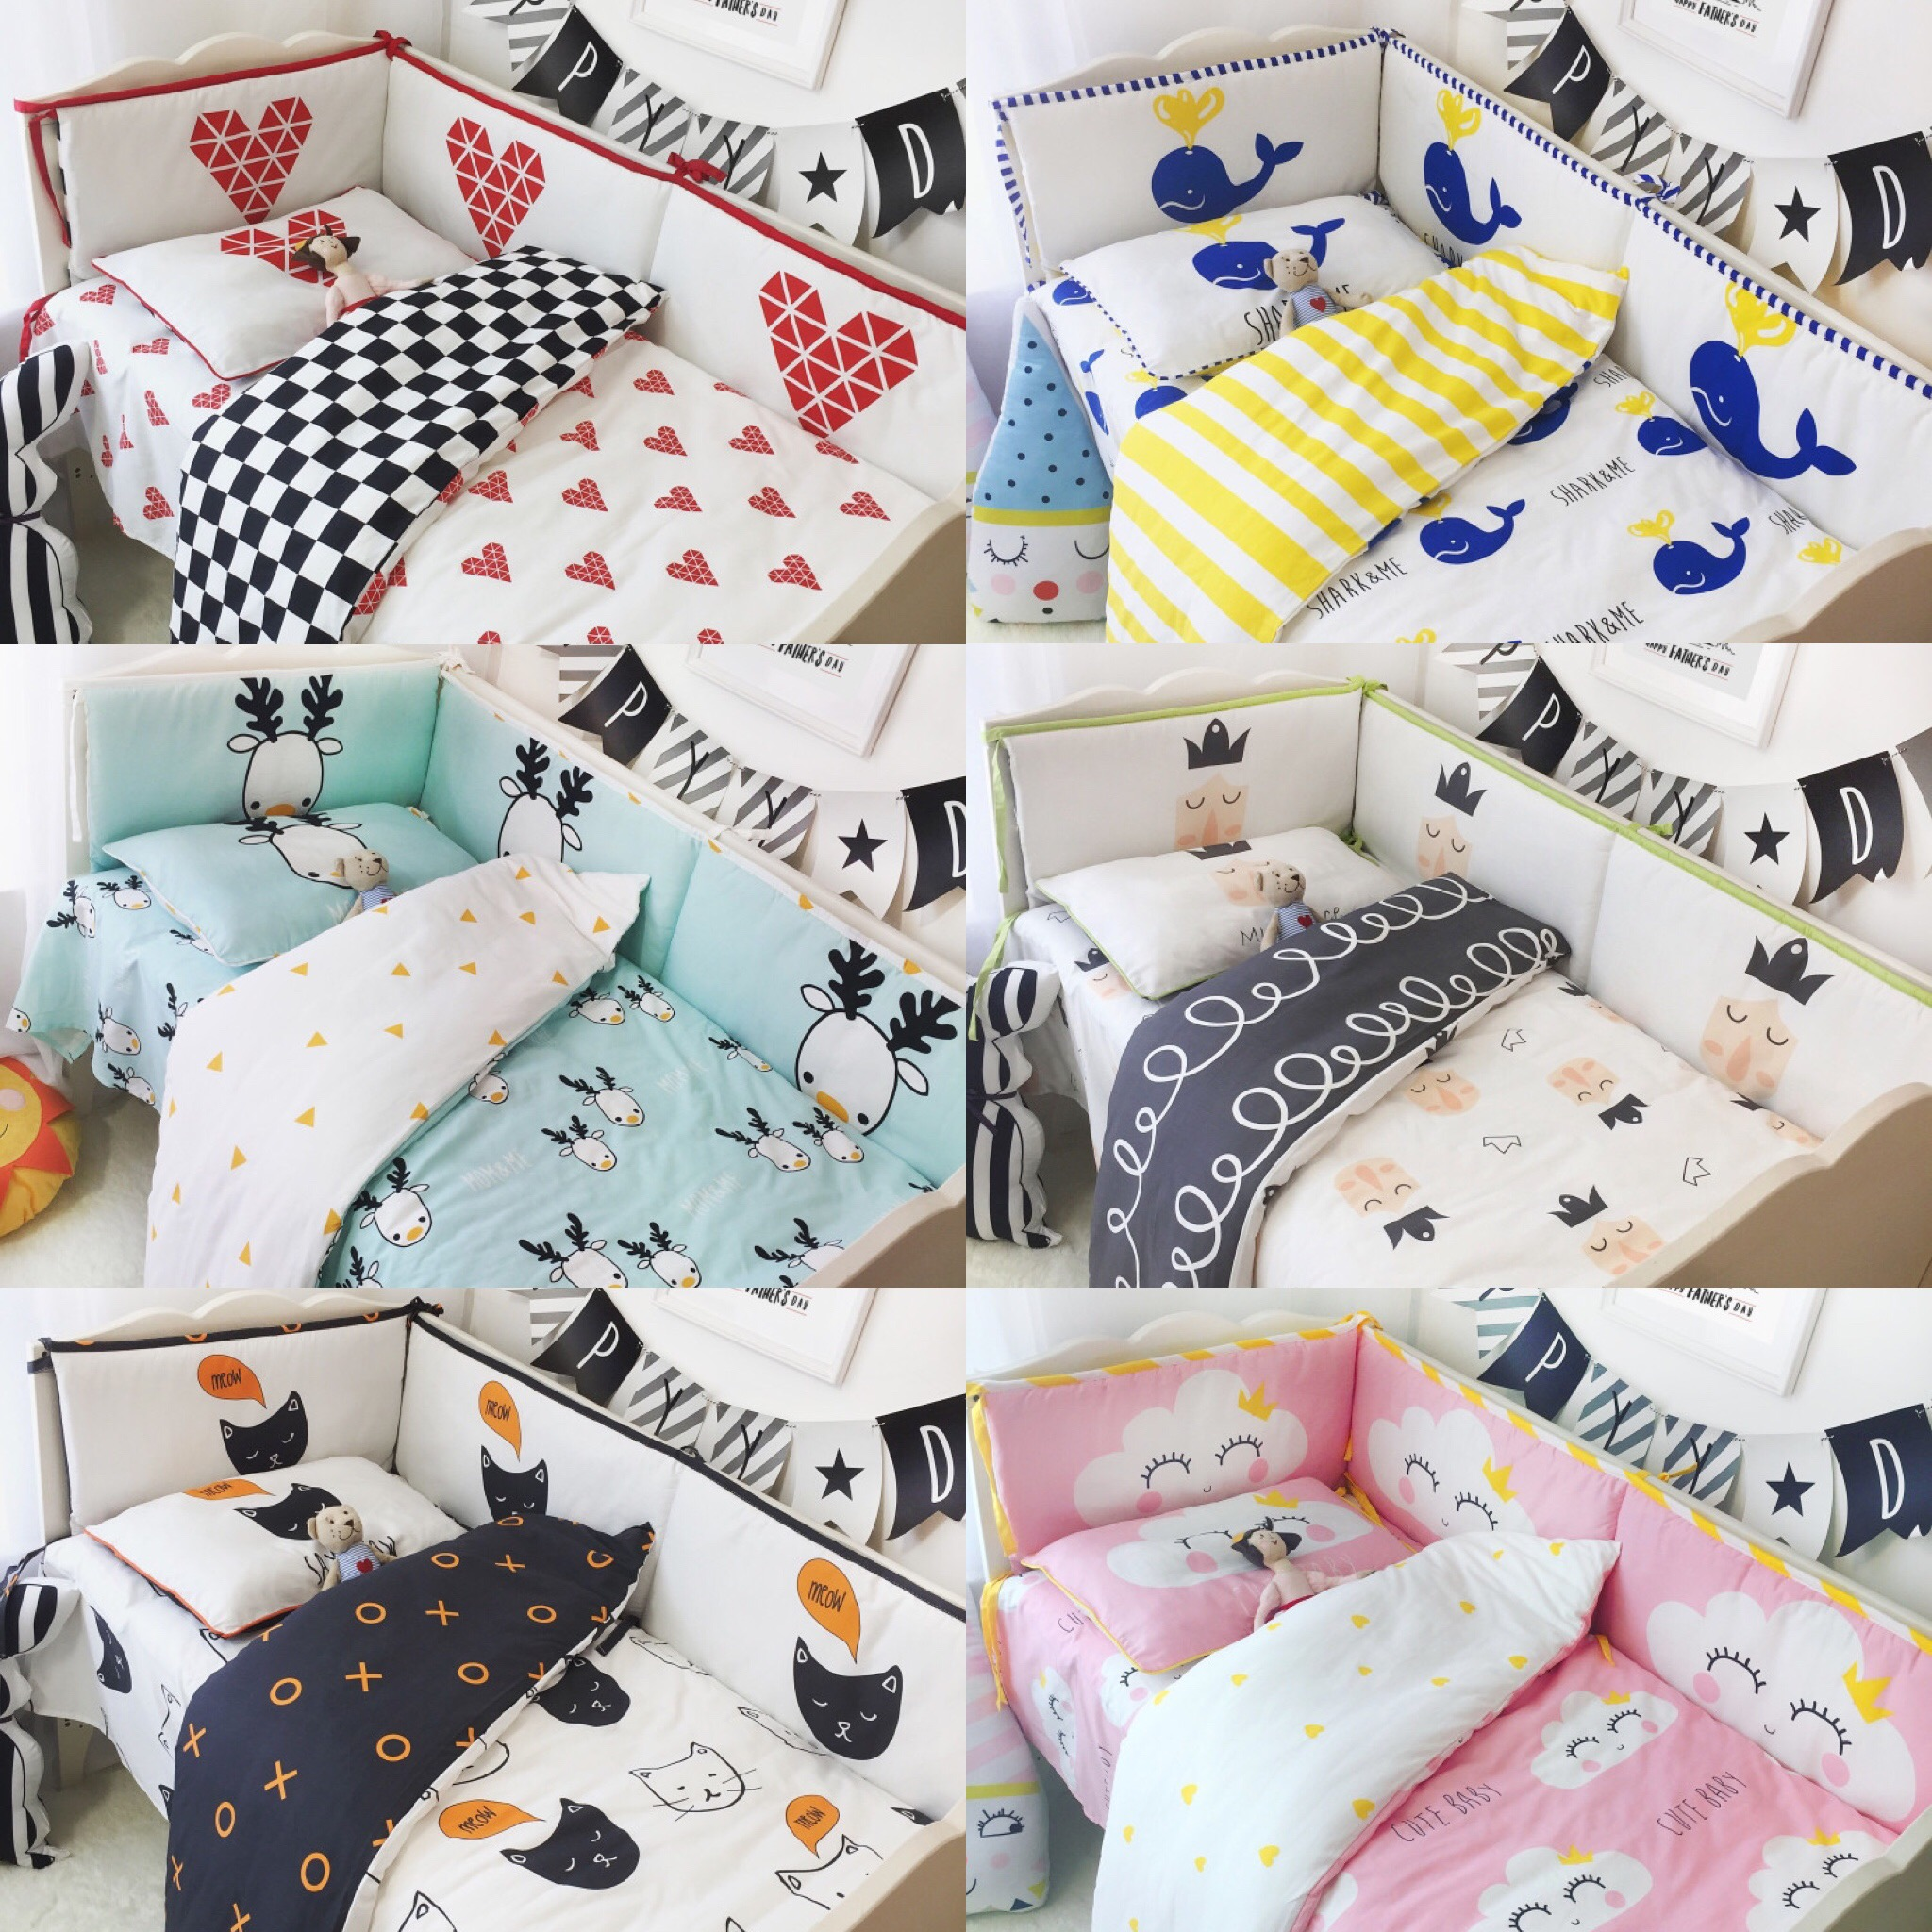 7pcs / set Ins baby bedding cotton baby bedding cot set Bumper Baby Cot Sets Bed Around Protector Pink Clouds Deer whale crown ноутбук hp 255 g6 1xn66ea